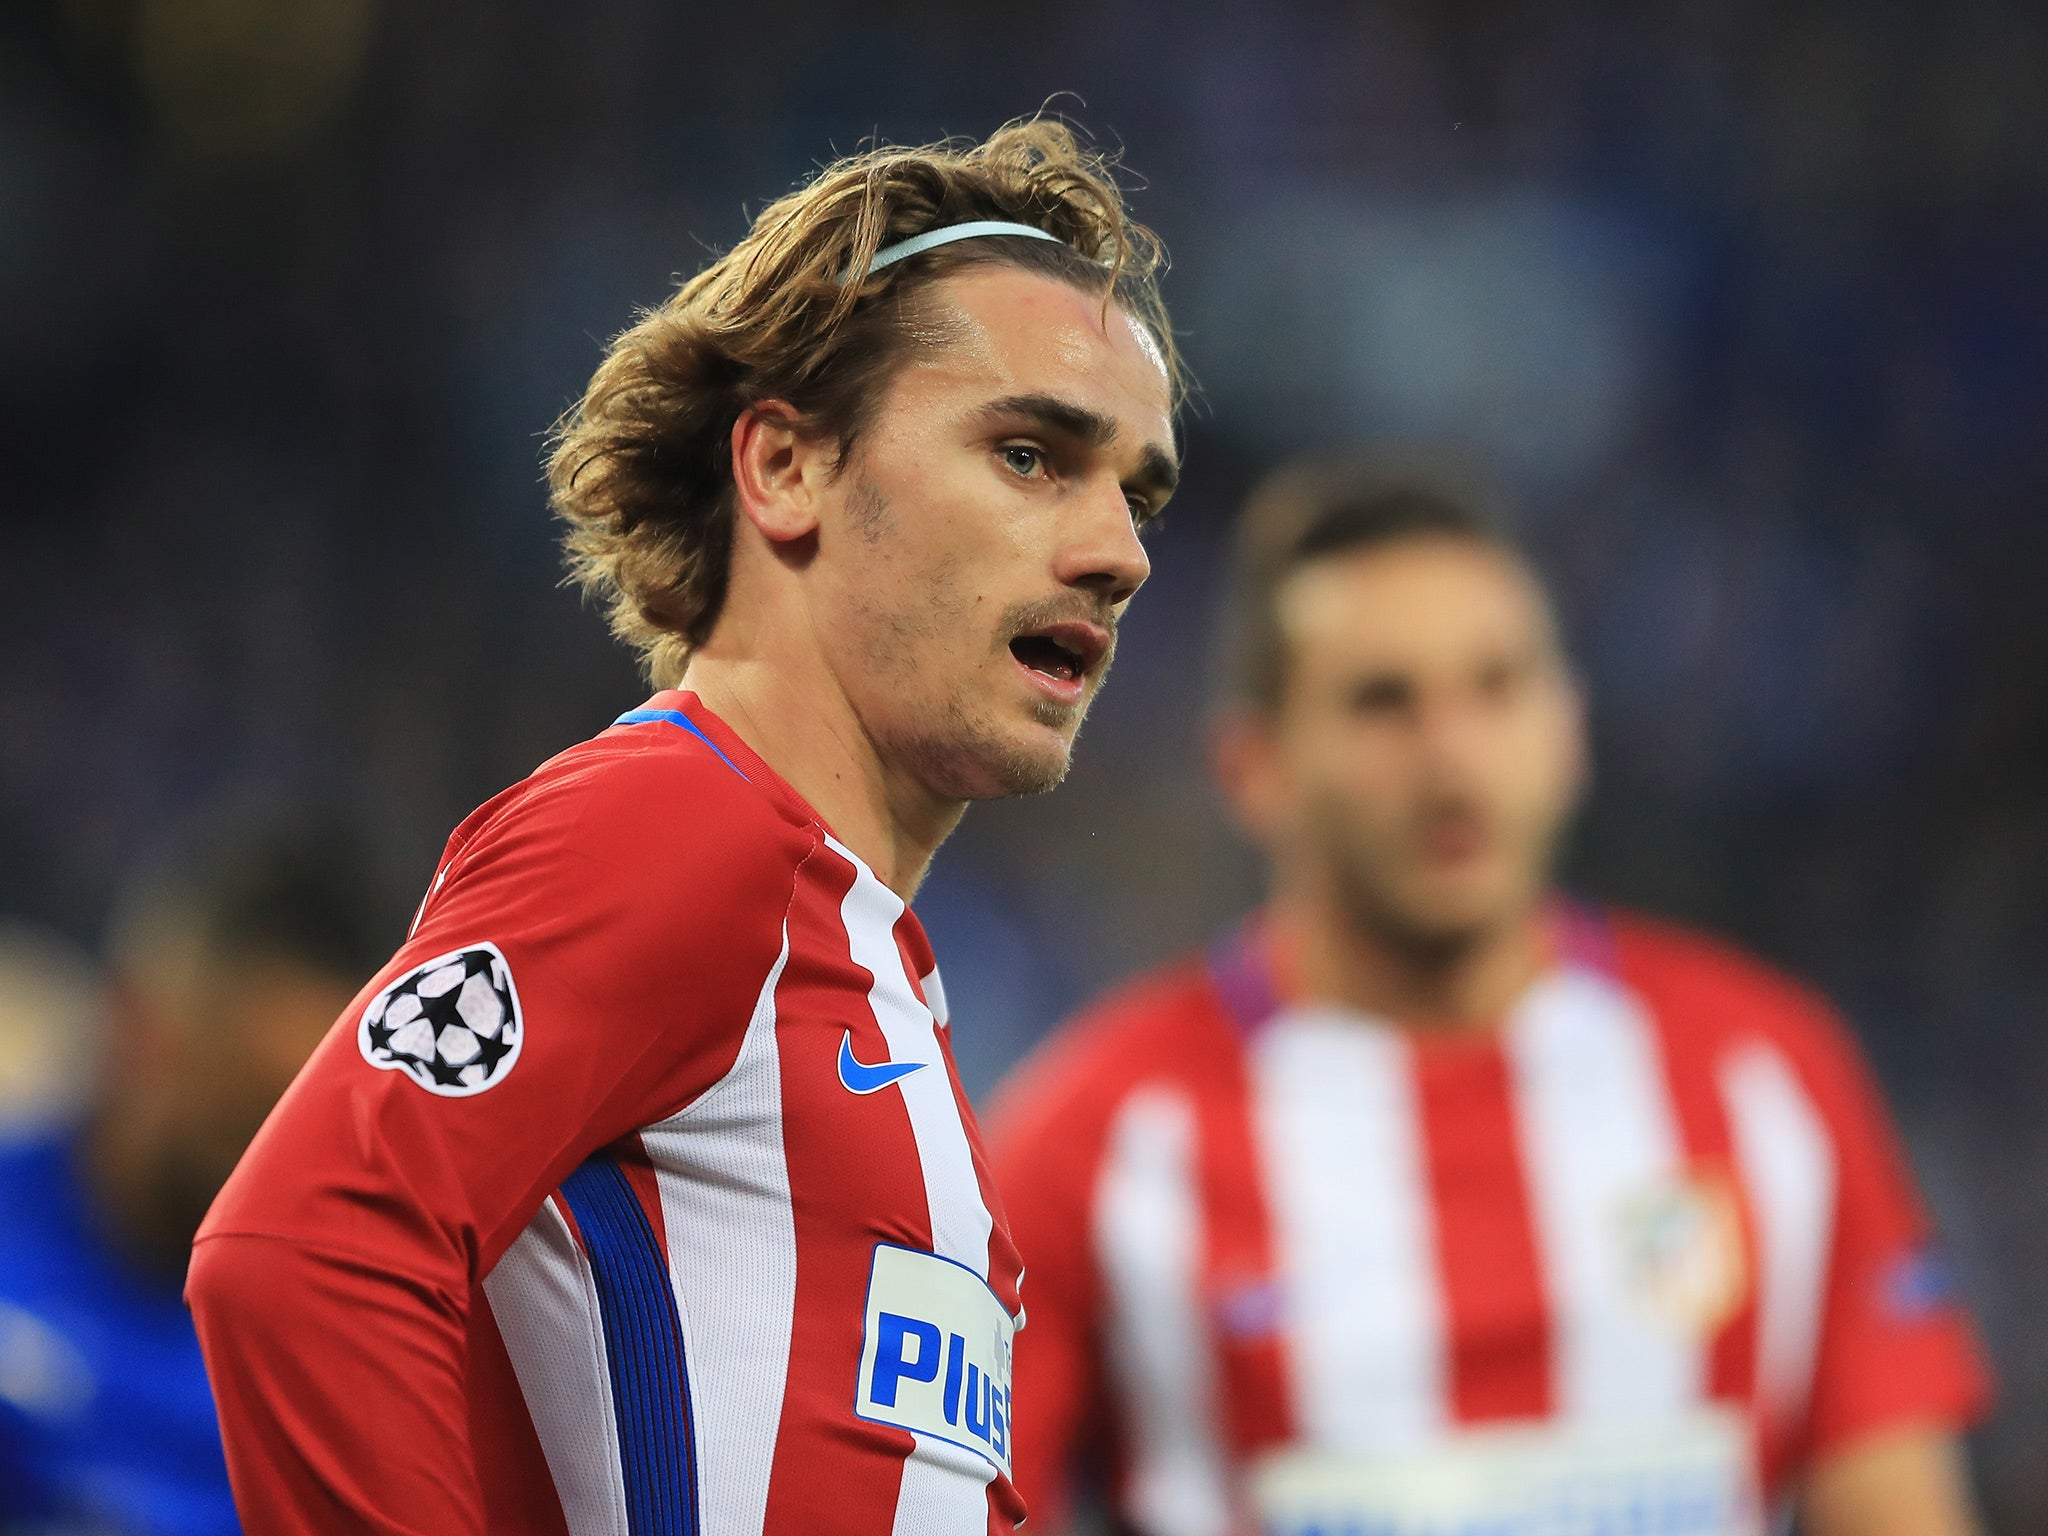 Antoine Griezmann reveals chances of joining Manchester United are